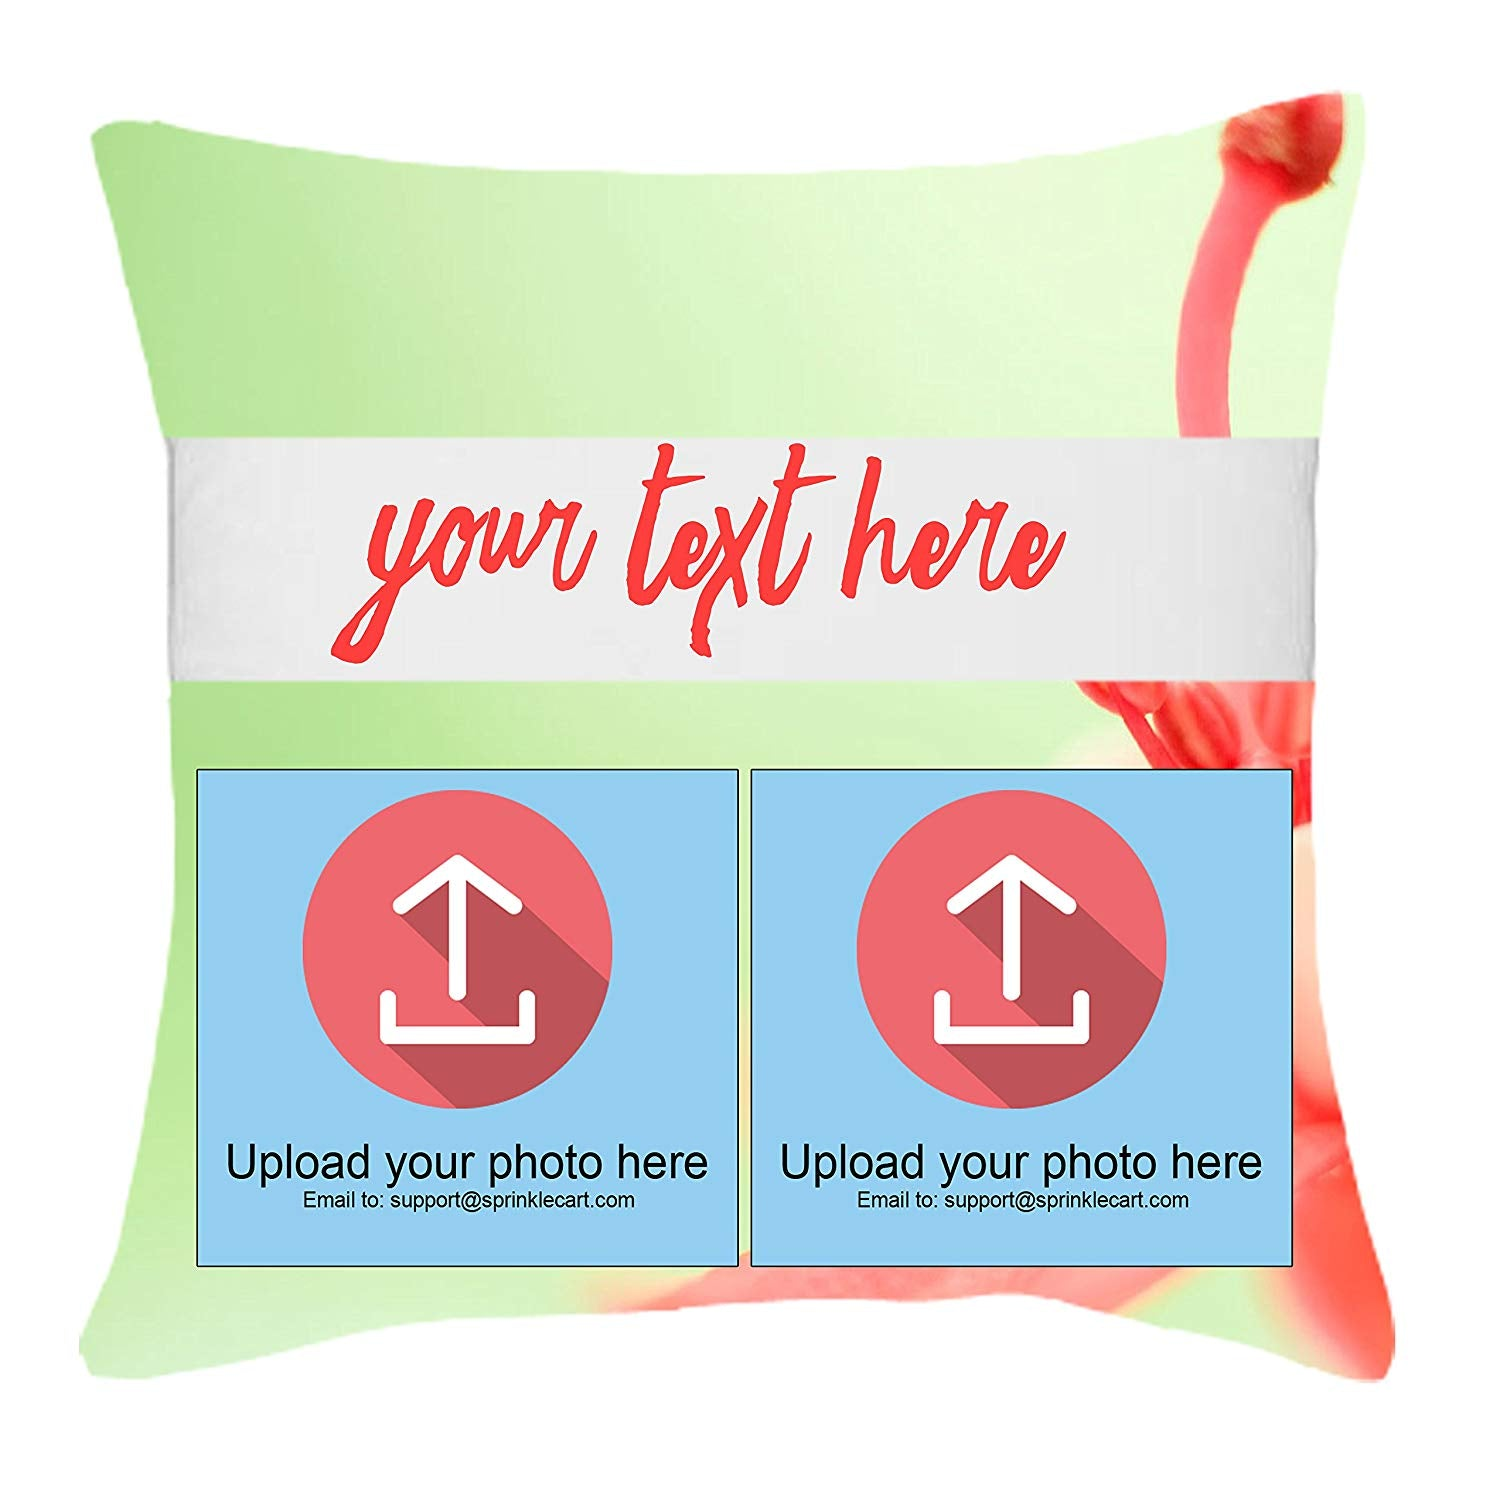 Gift for Friend | Personalized Photo and Text Printed Special Gift Cushion by Sprinklecart | 15″ x 15″ with Filler Insert